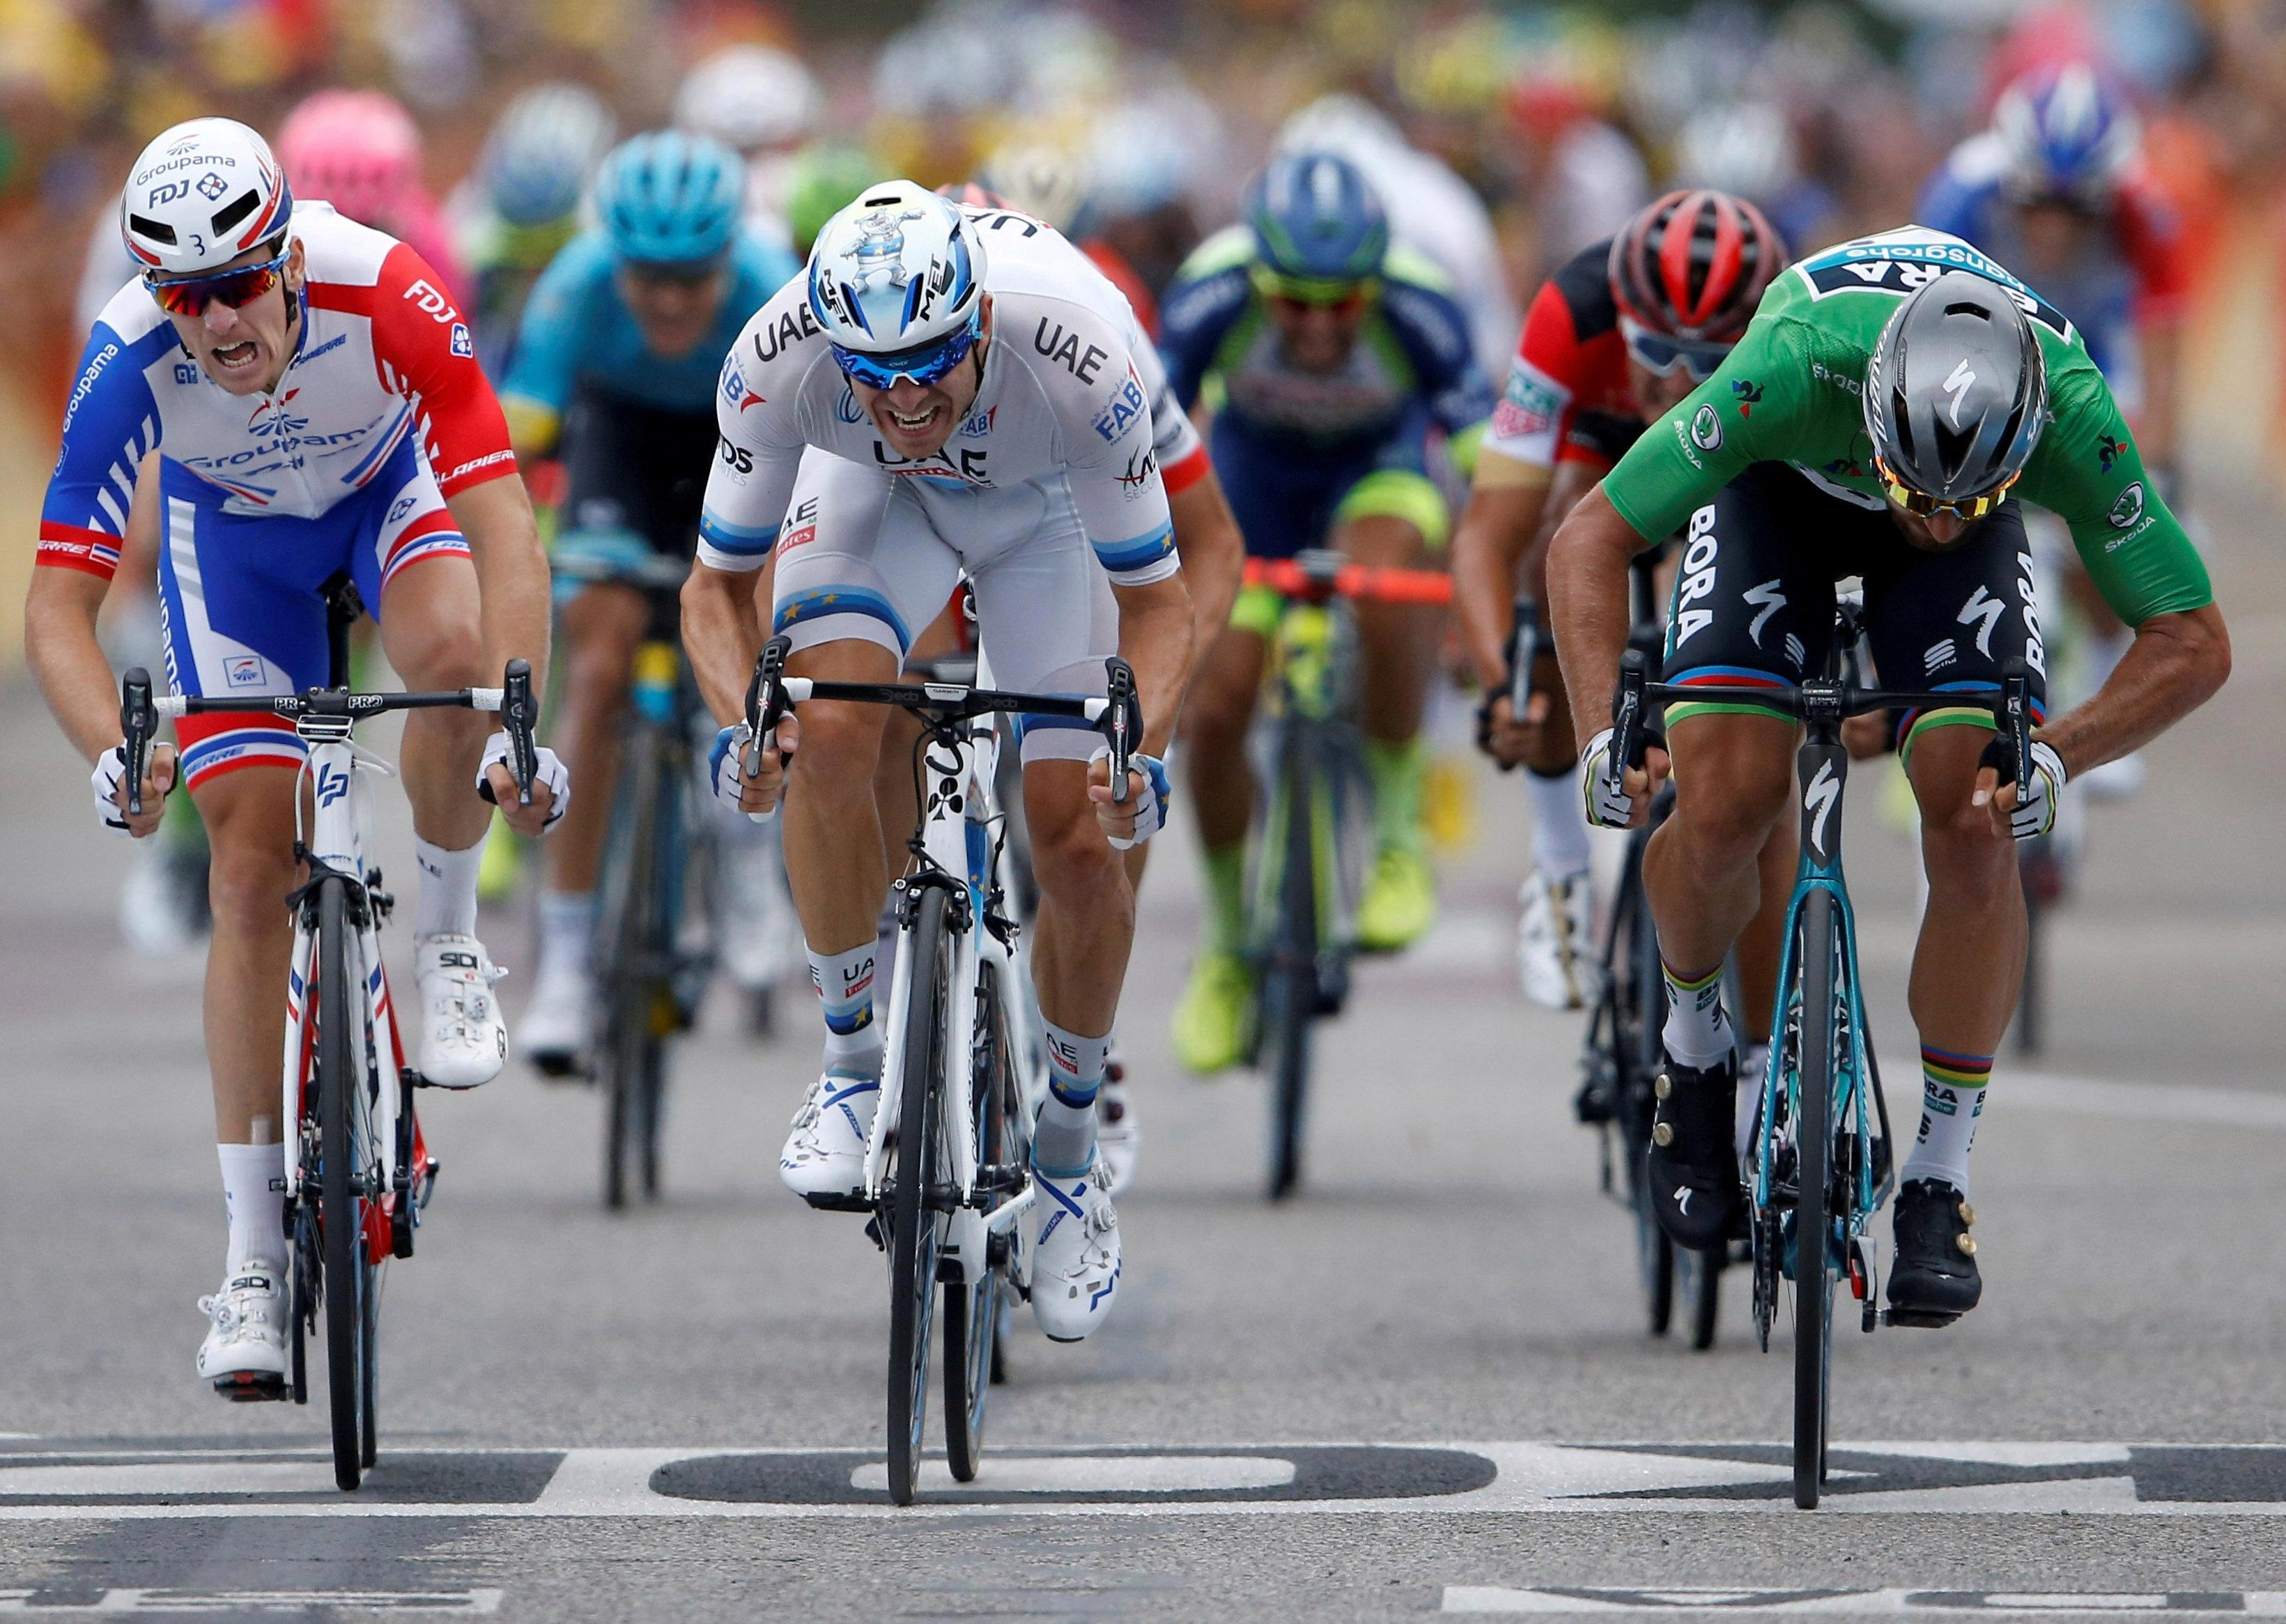 Stage 13 was won by BORA-Hansgrohe's Slovak Peter Sagan, ahead of UAE Team Emirates' Alexander Kristoff  and France's Groupama-FDJ ace Arnaud Demare